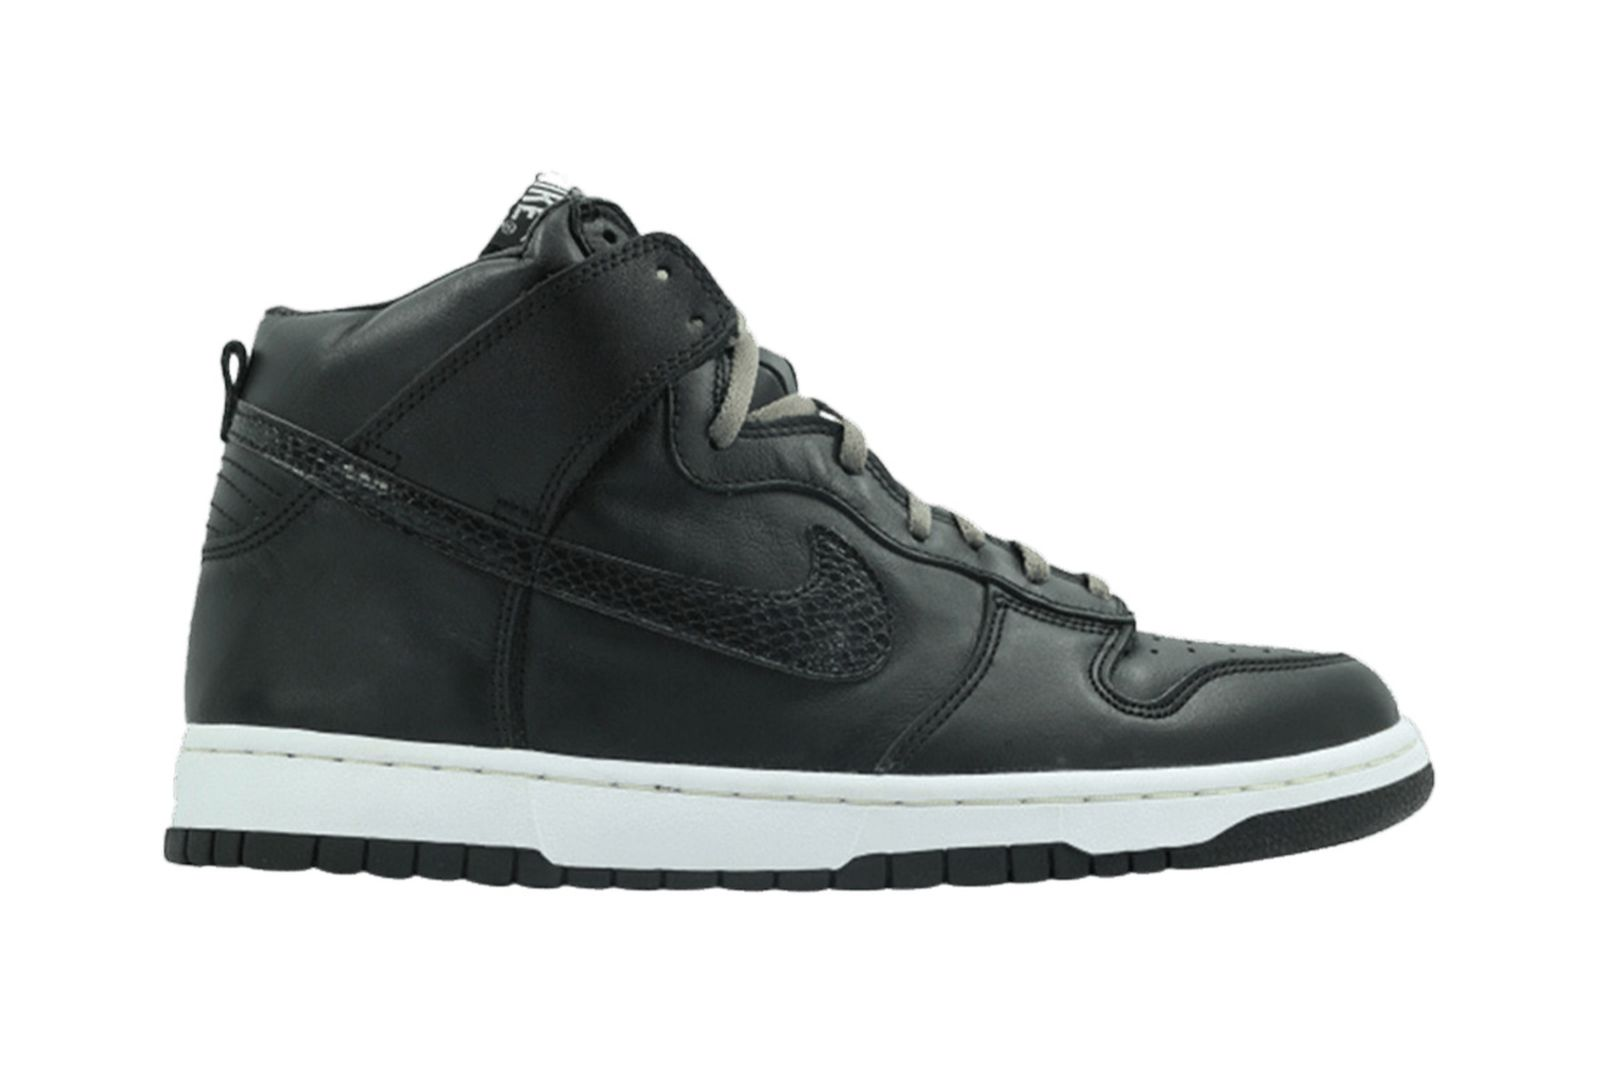 stussy-nike-sneaker-collaboration-roundup-new-06